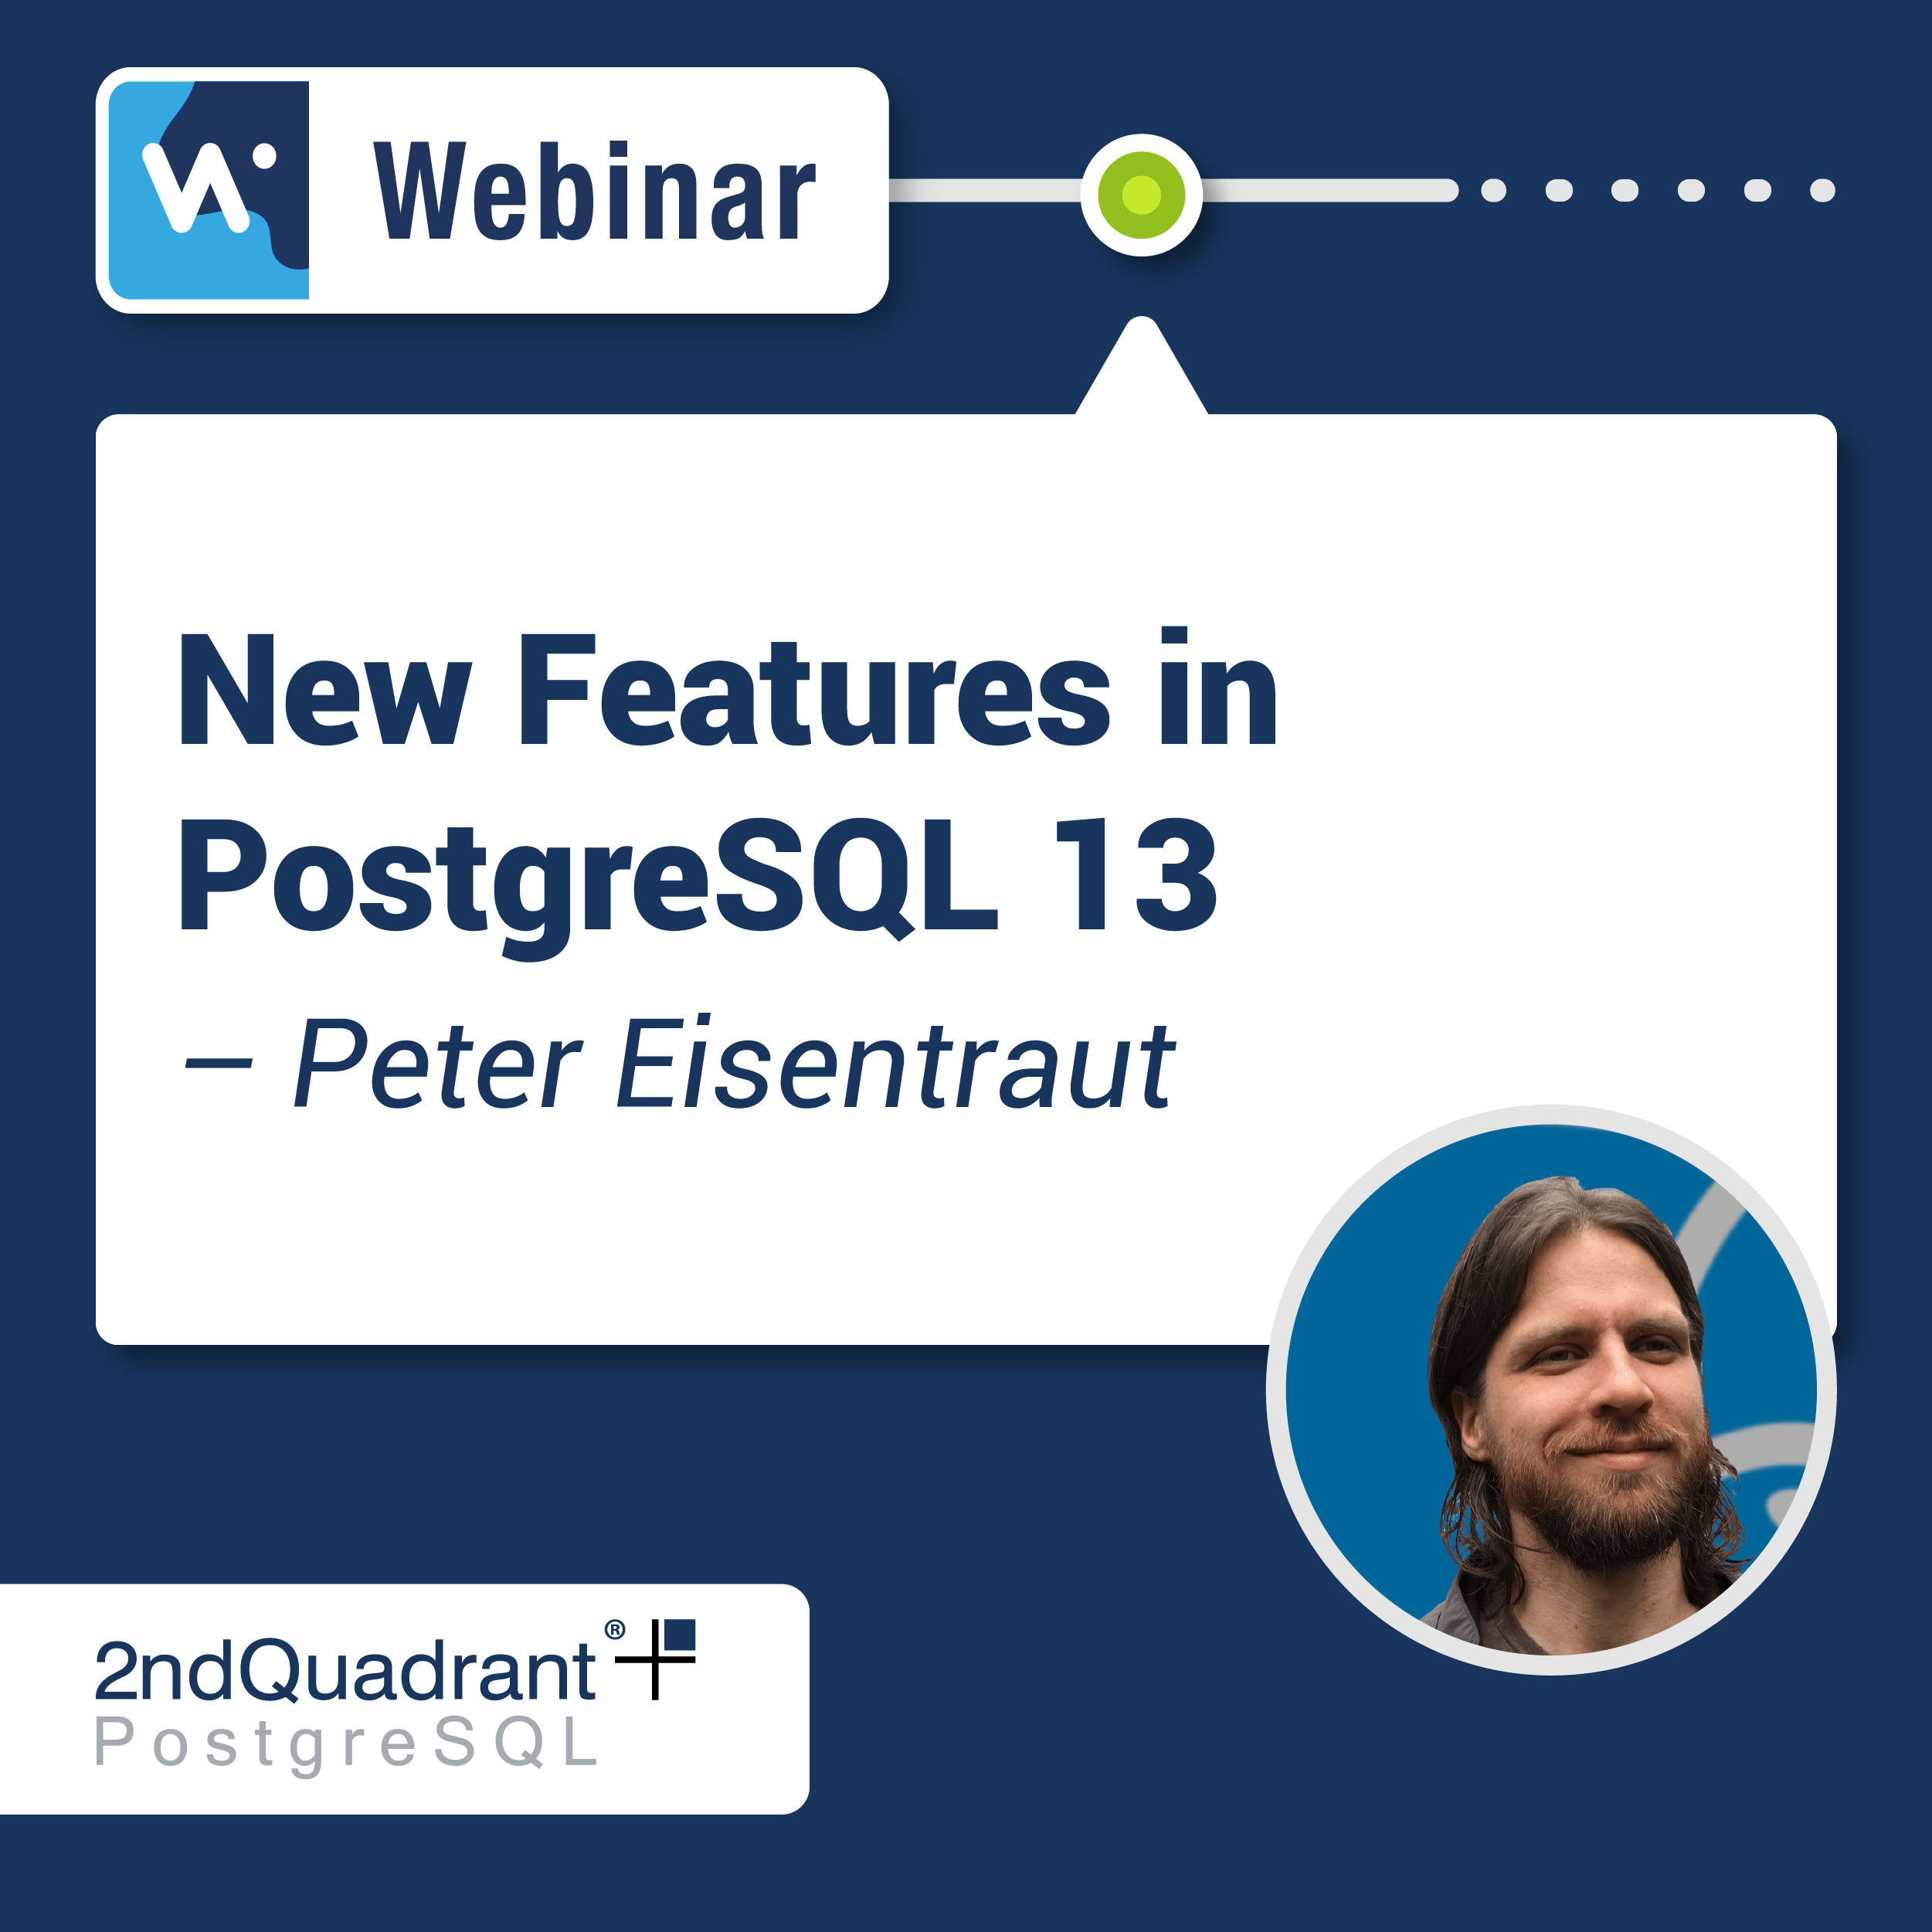 New Features in PostgreSQL 13